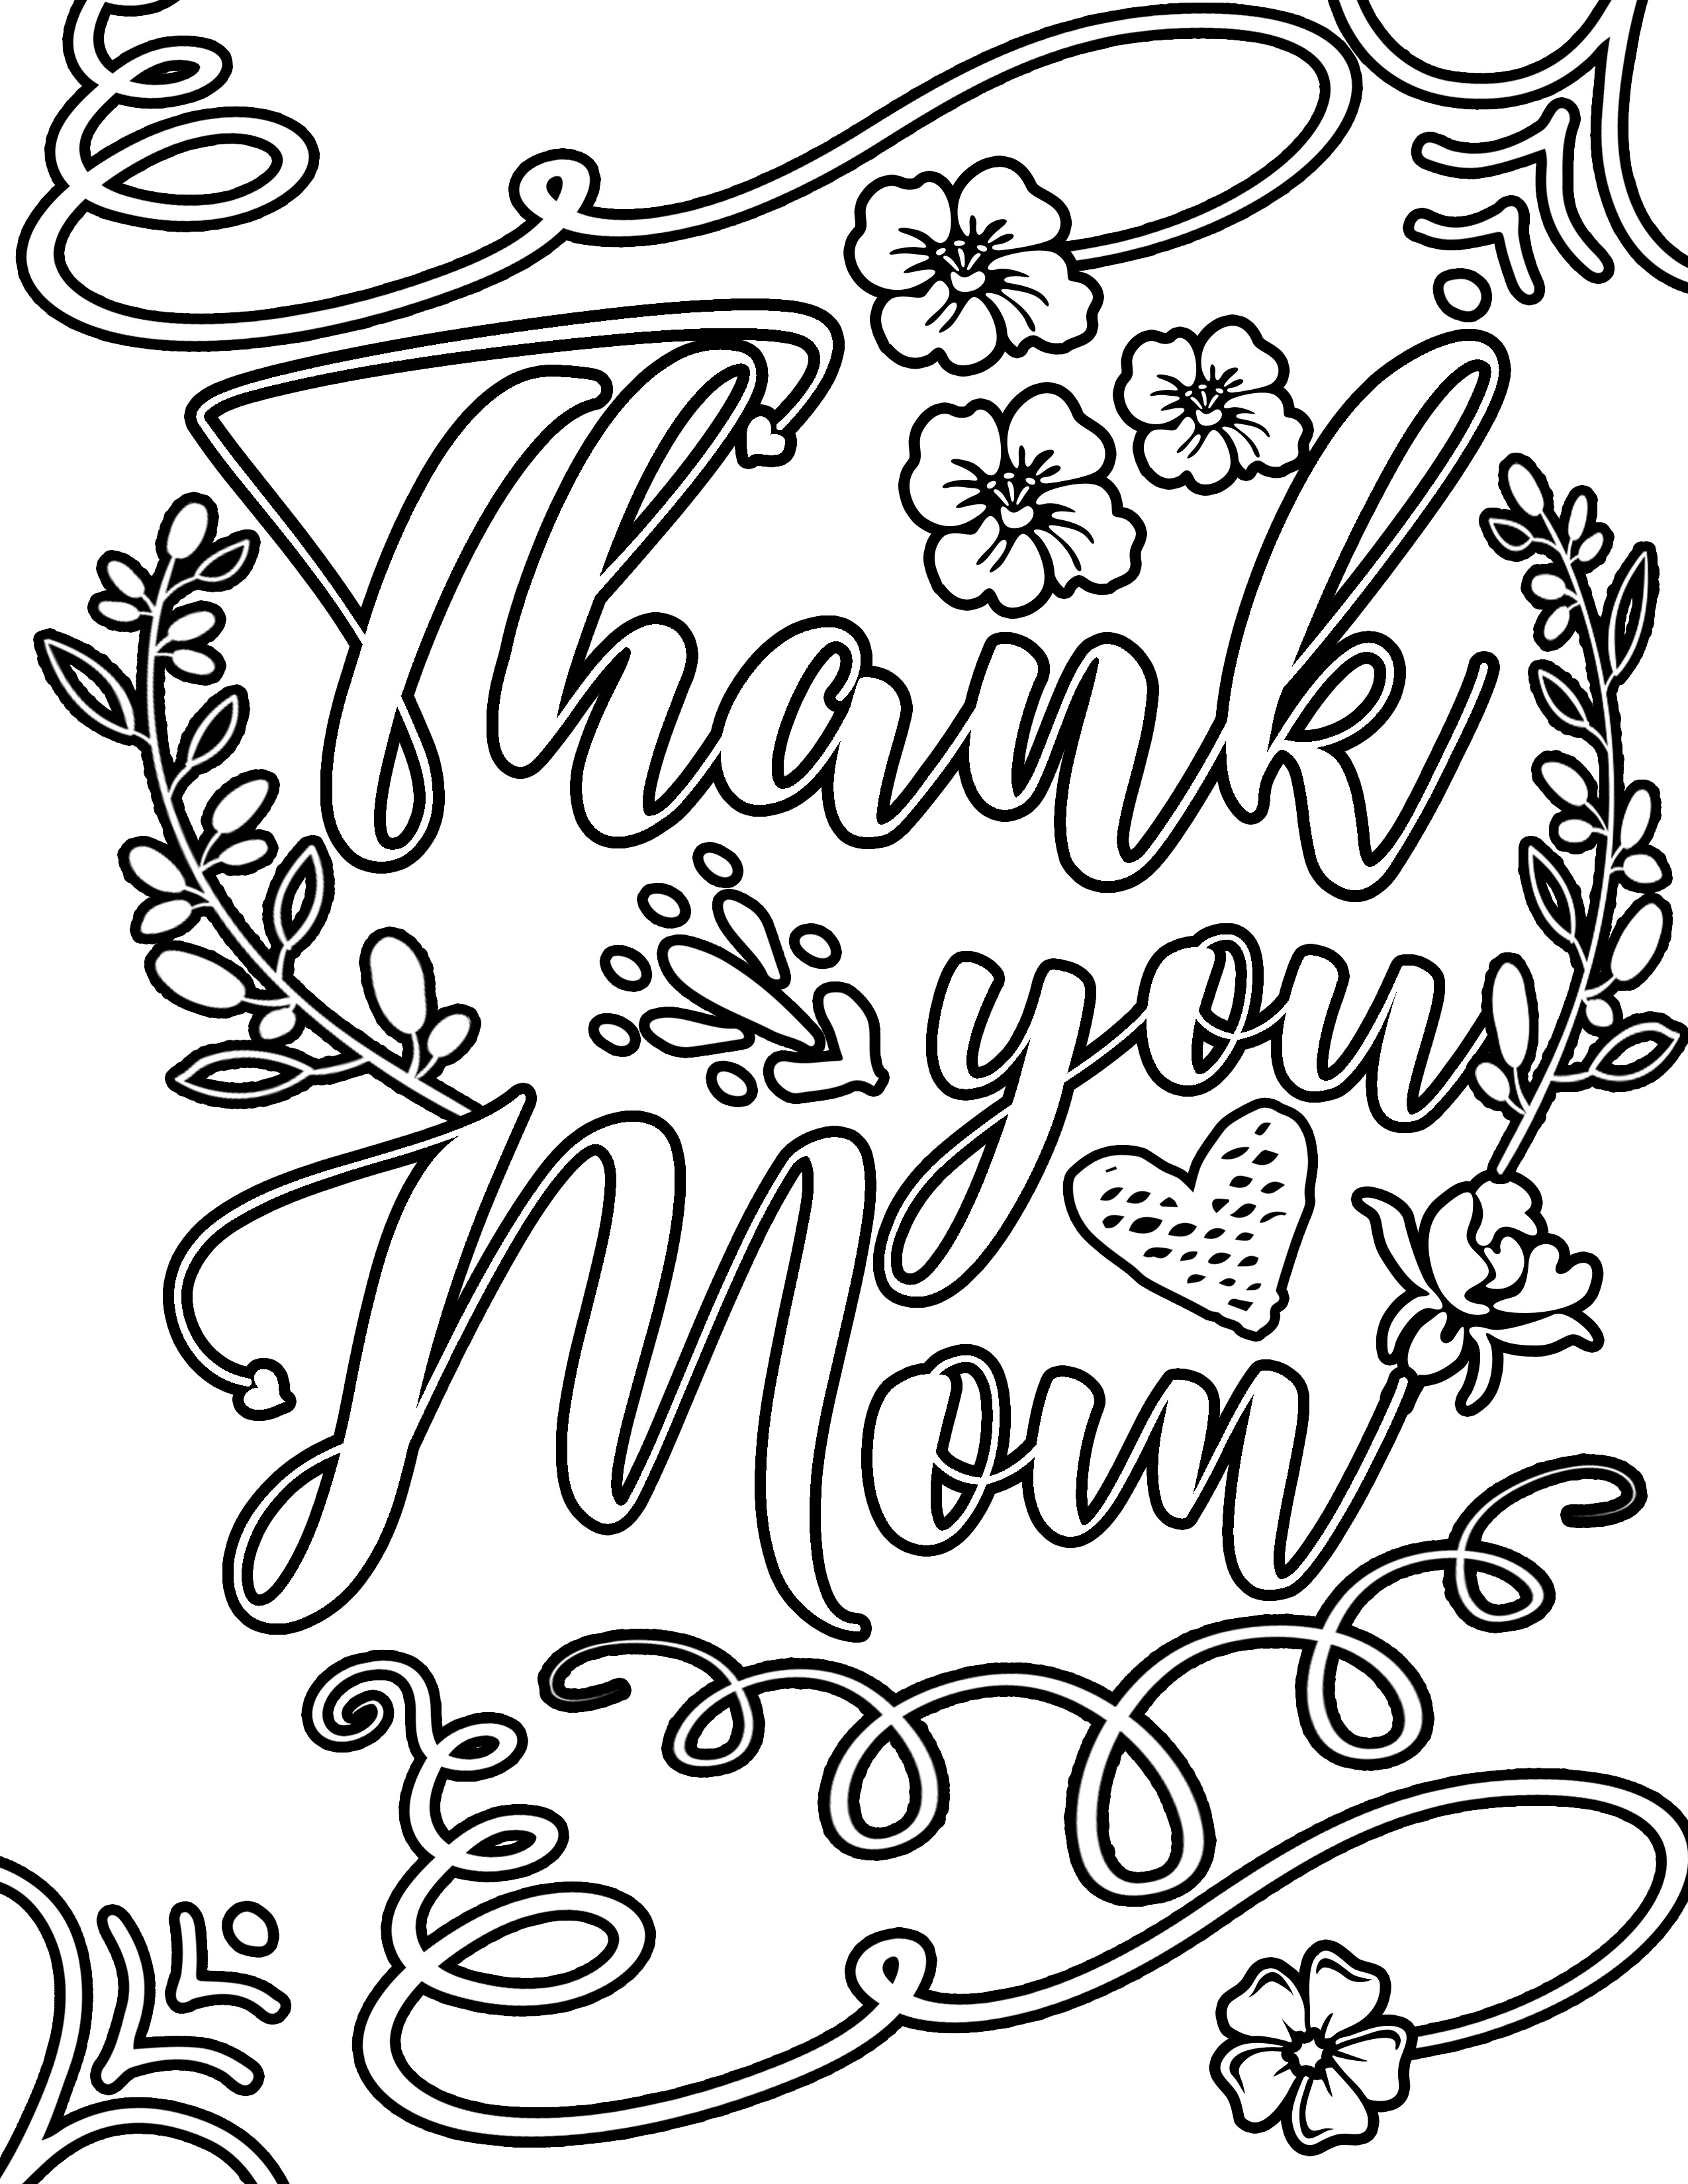 Thank you mom MOTHER'S DAY flower with vines and frills Clipart Coloring Pages for Kids Adults Art Activities Line Art